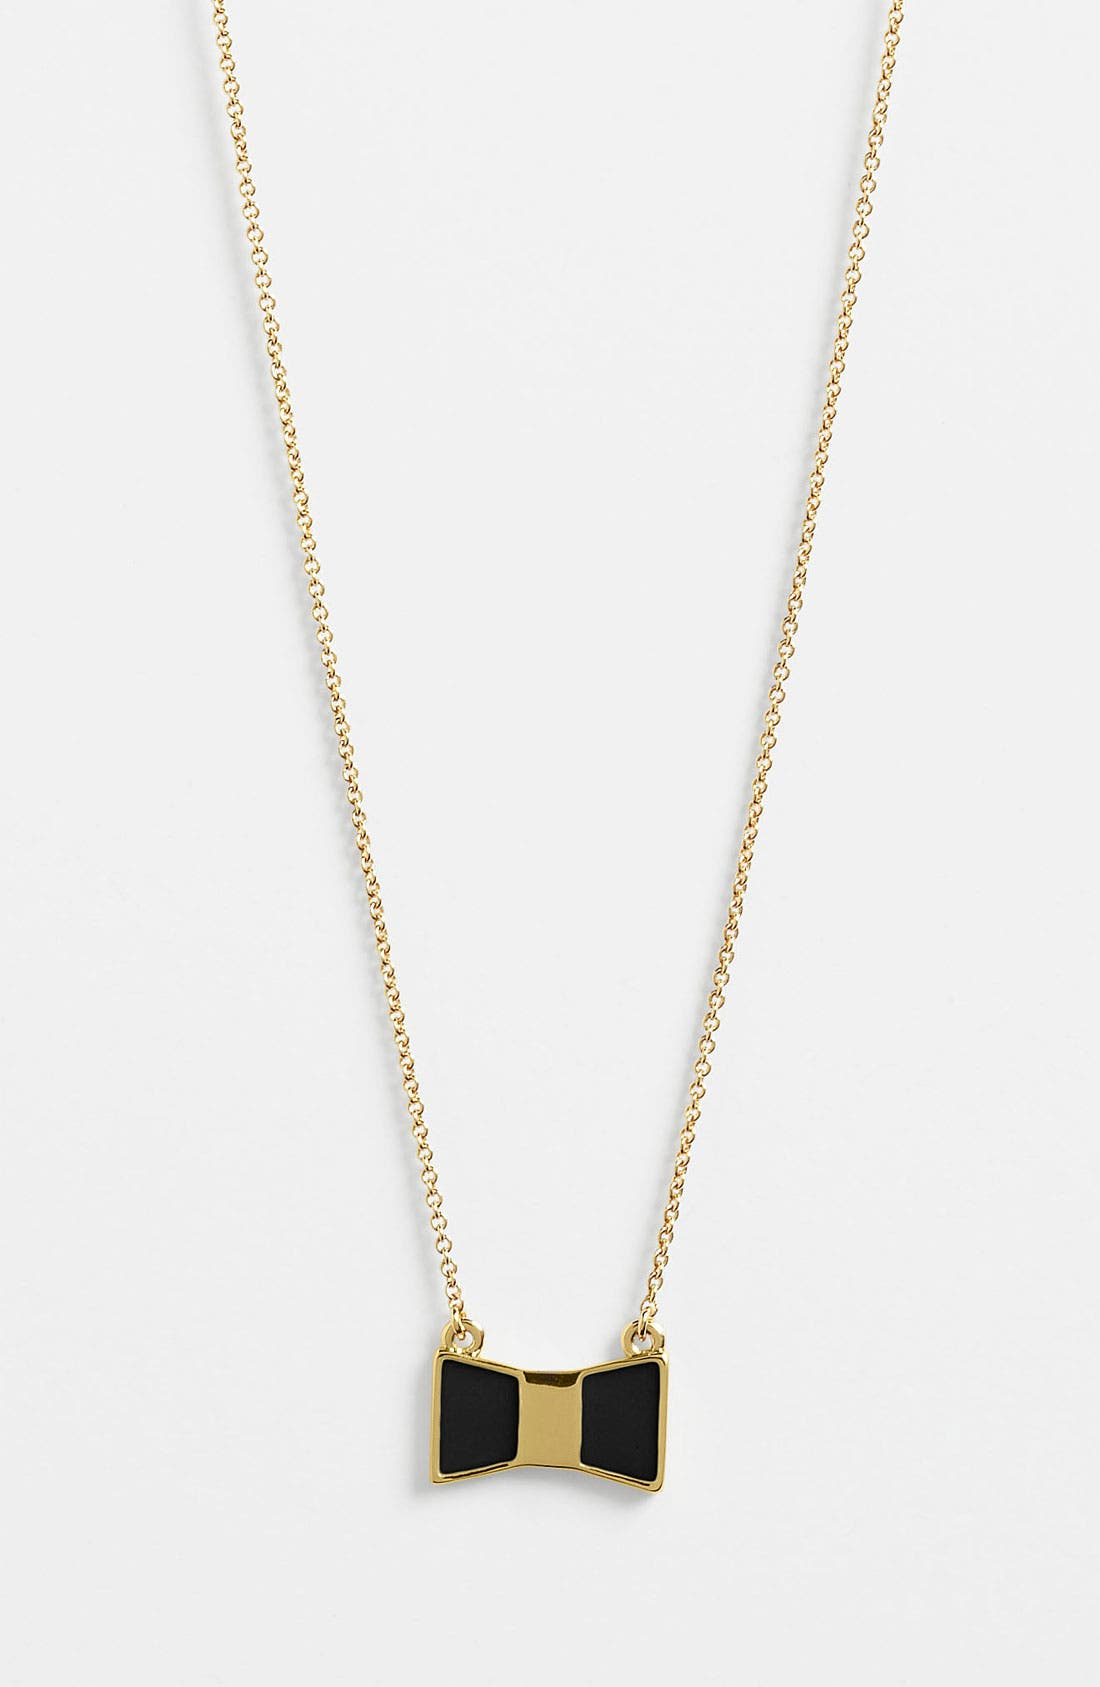 Alternate Image 1 Selected - kate spade new york 'bow shoppe' pendant necklace